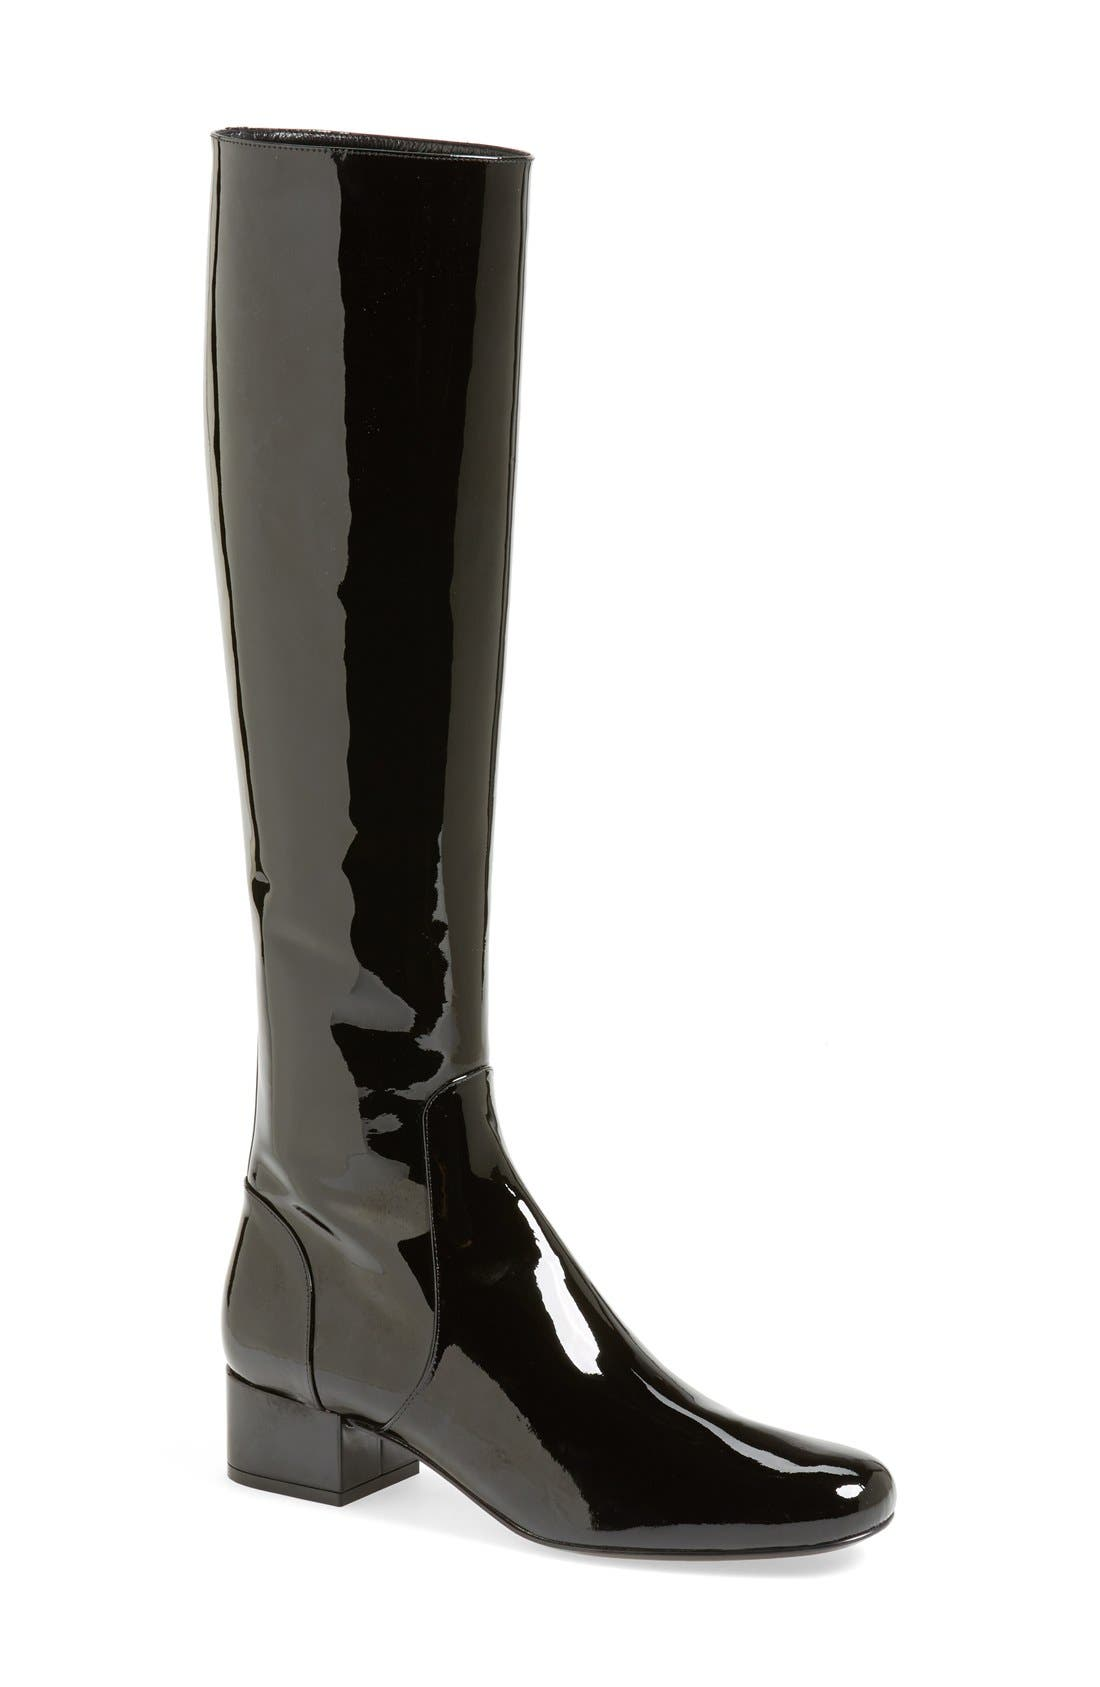 Alternate Image 1 Selected - Saint Laurent Over the Knee Patent Leather Boot (Women)